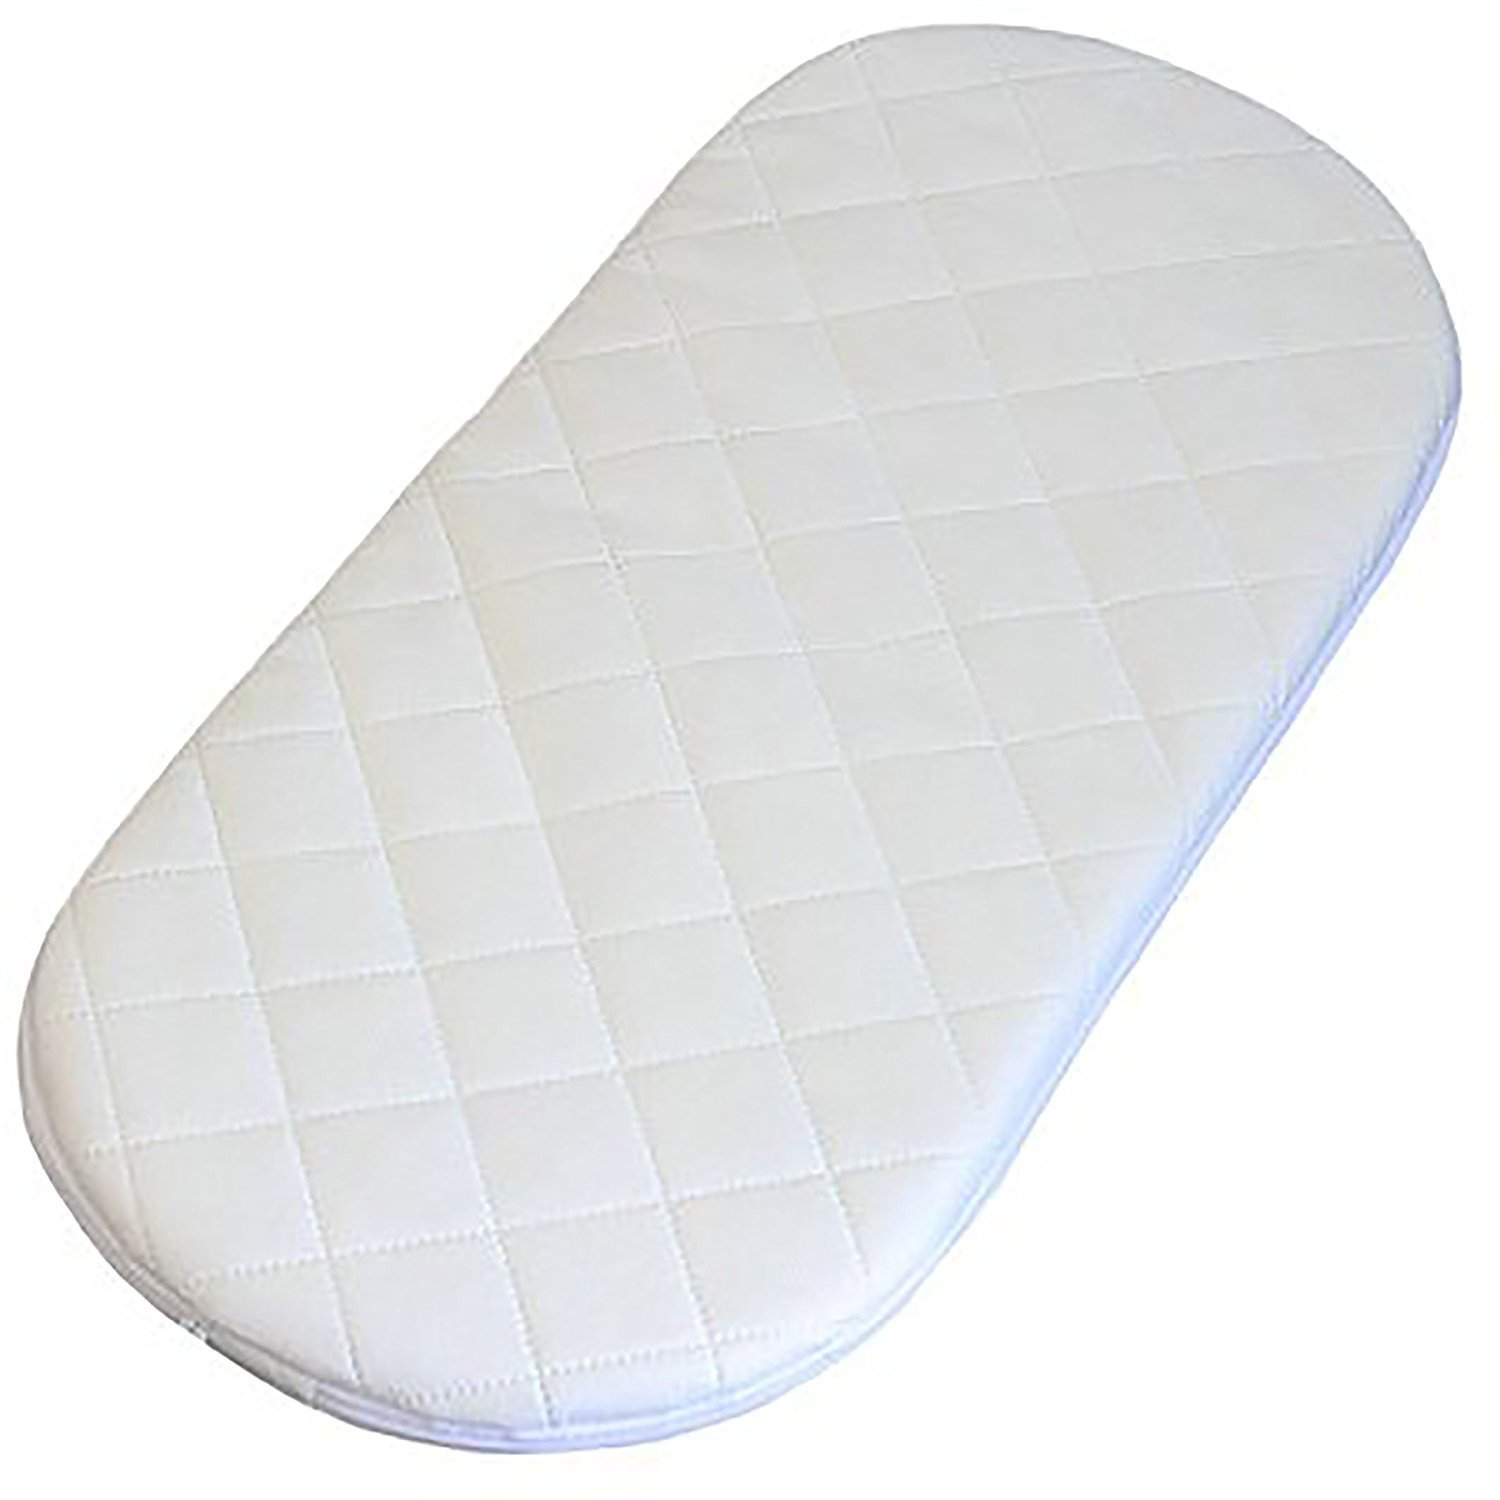 Replacement Safety Mattress with Quilted Cover to fit The Venicci Pram Carrycot Length 75cm, Width 33cm